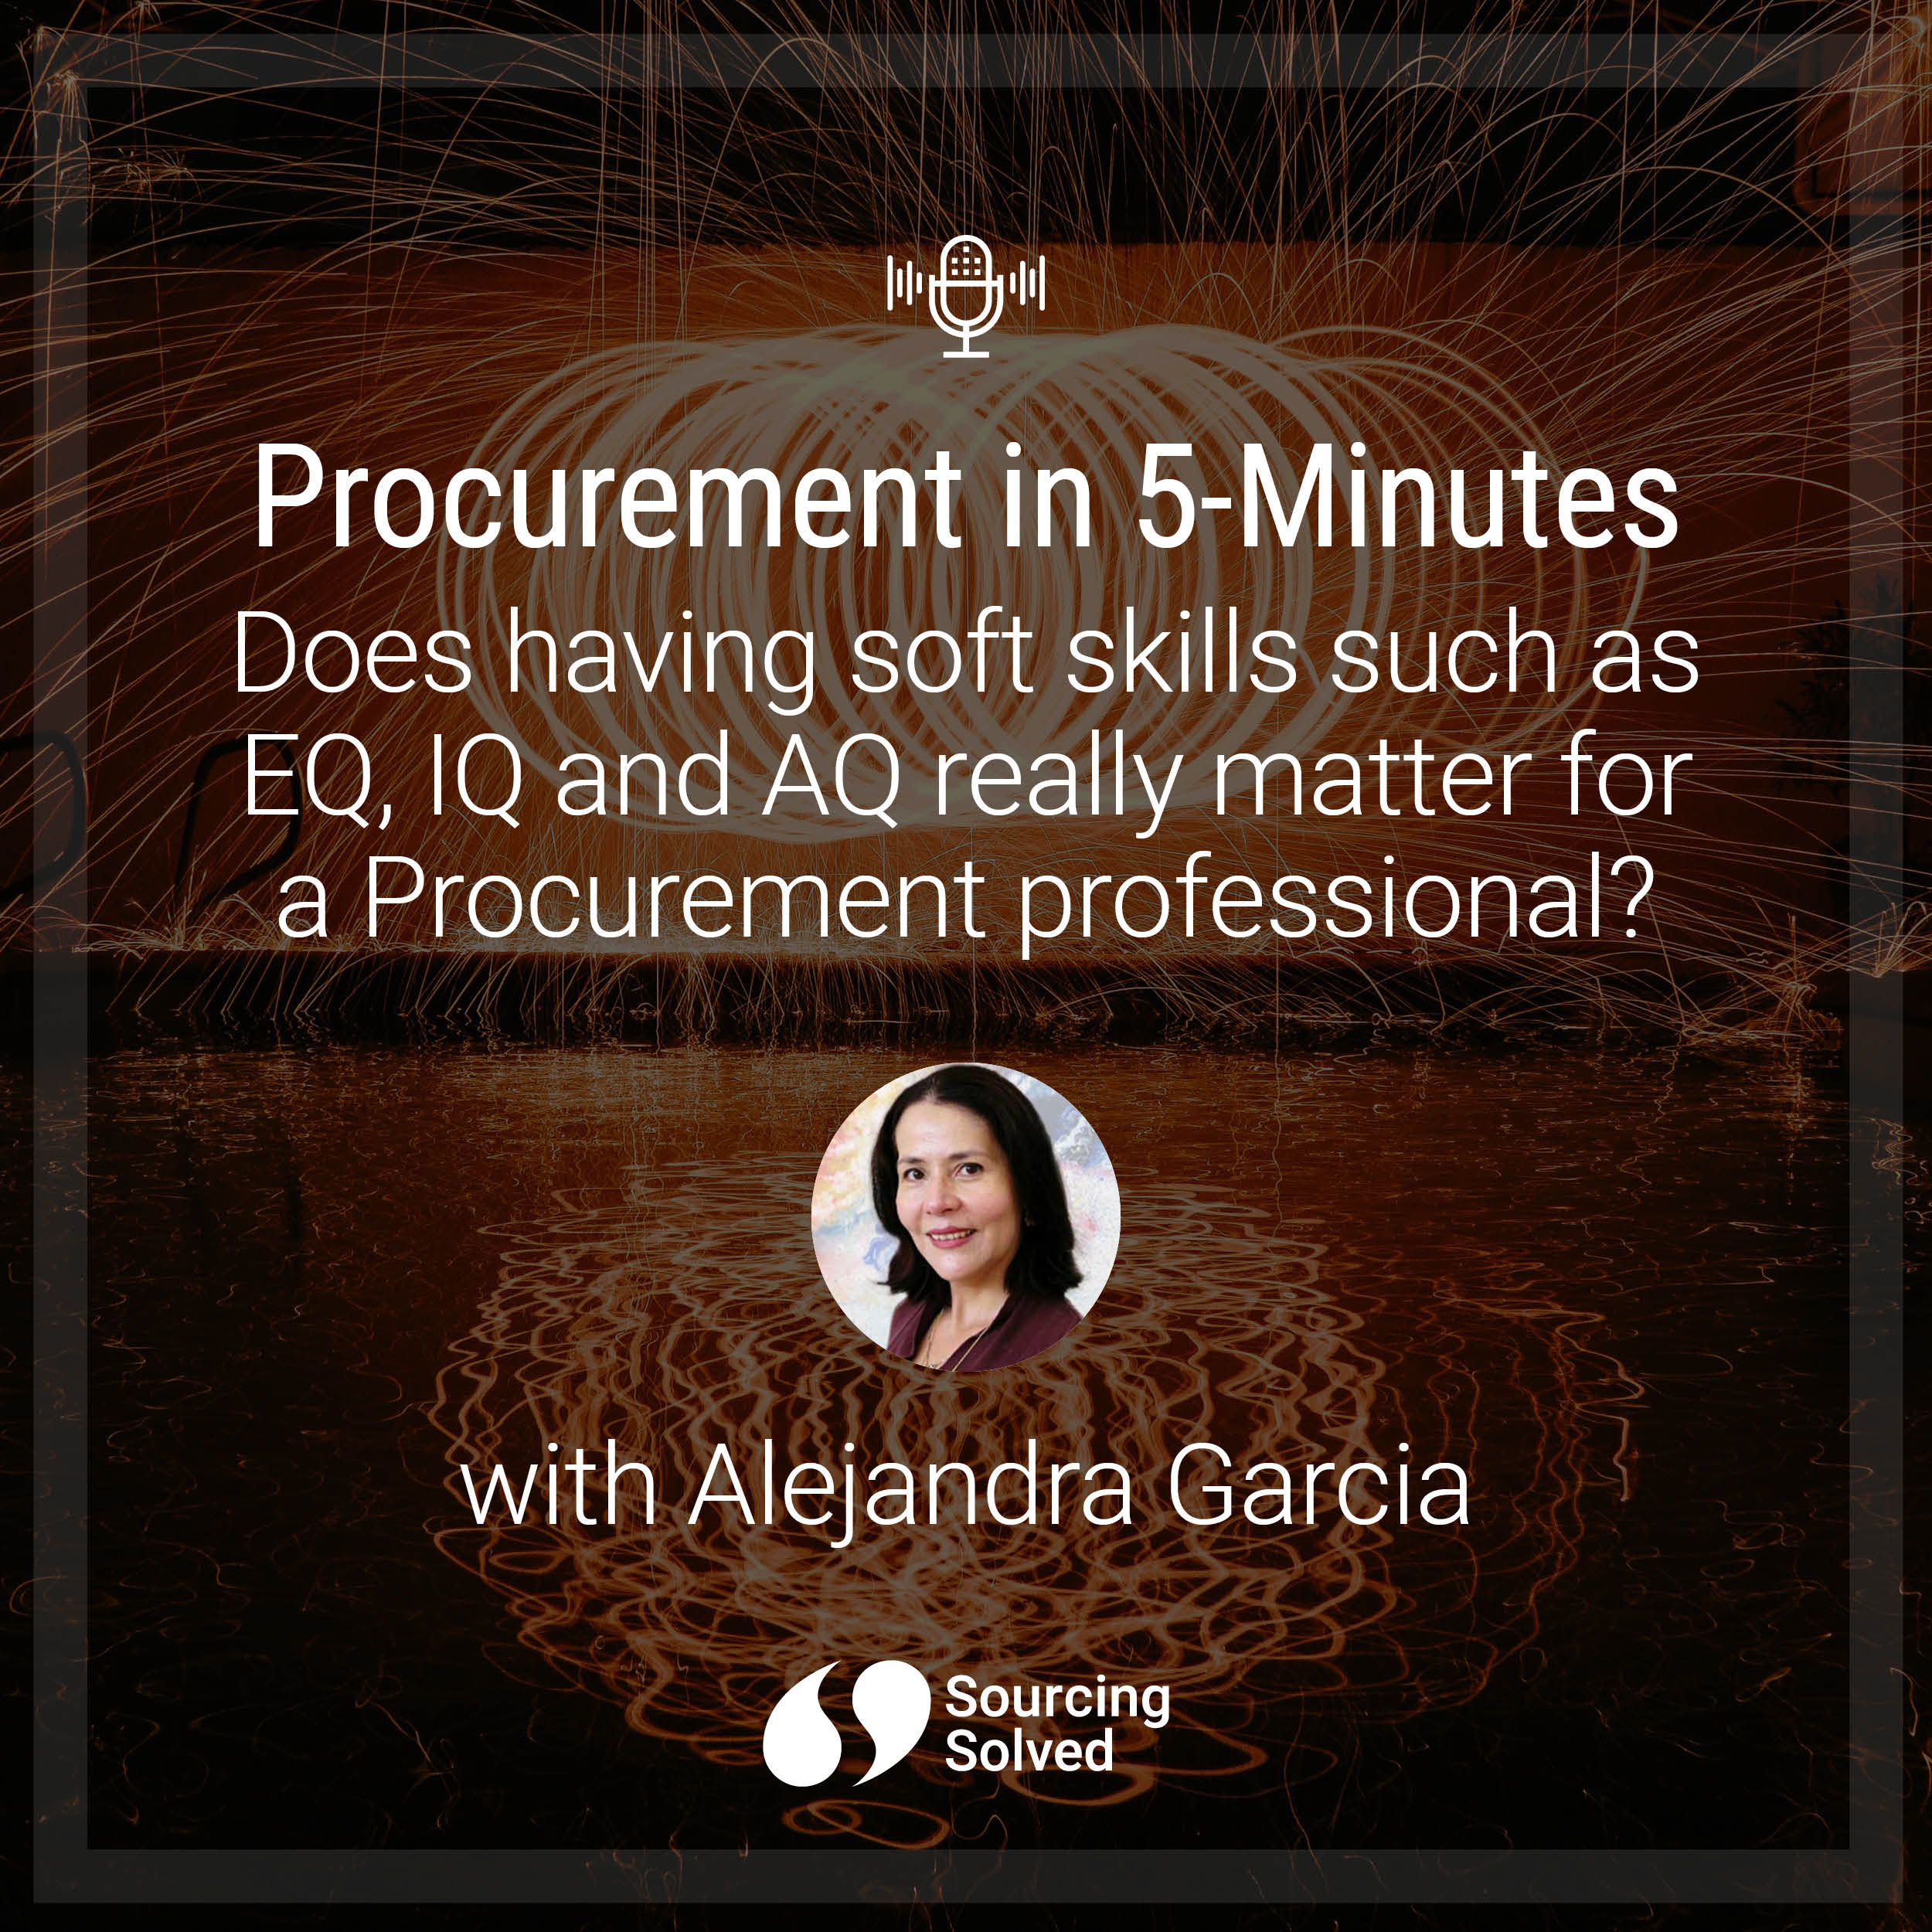 Procurement in 5-Minutes: Does having soft skills such as EQ, IQ and AQ really matter for a Procurement professional?